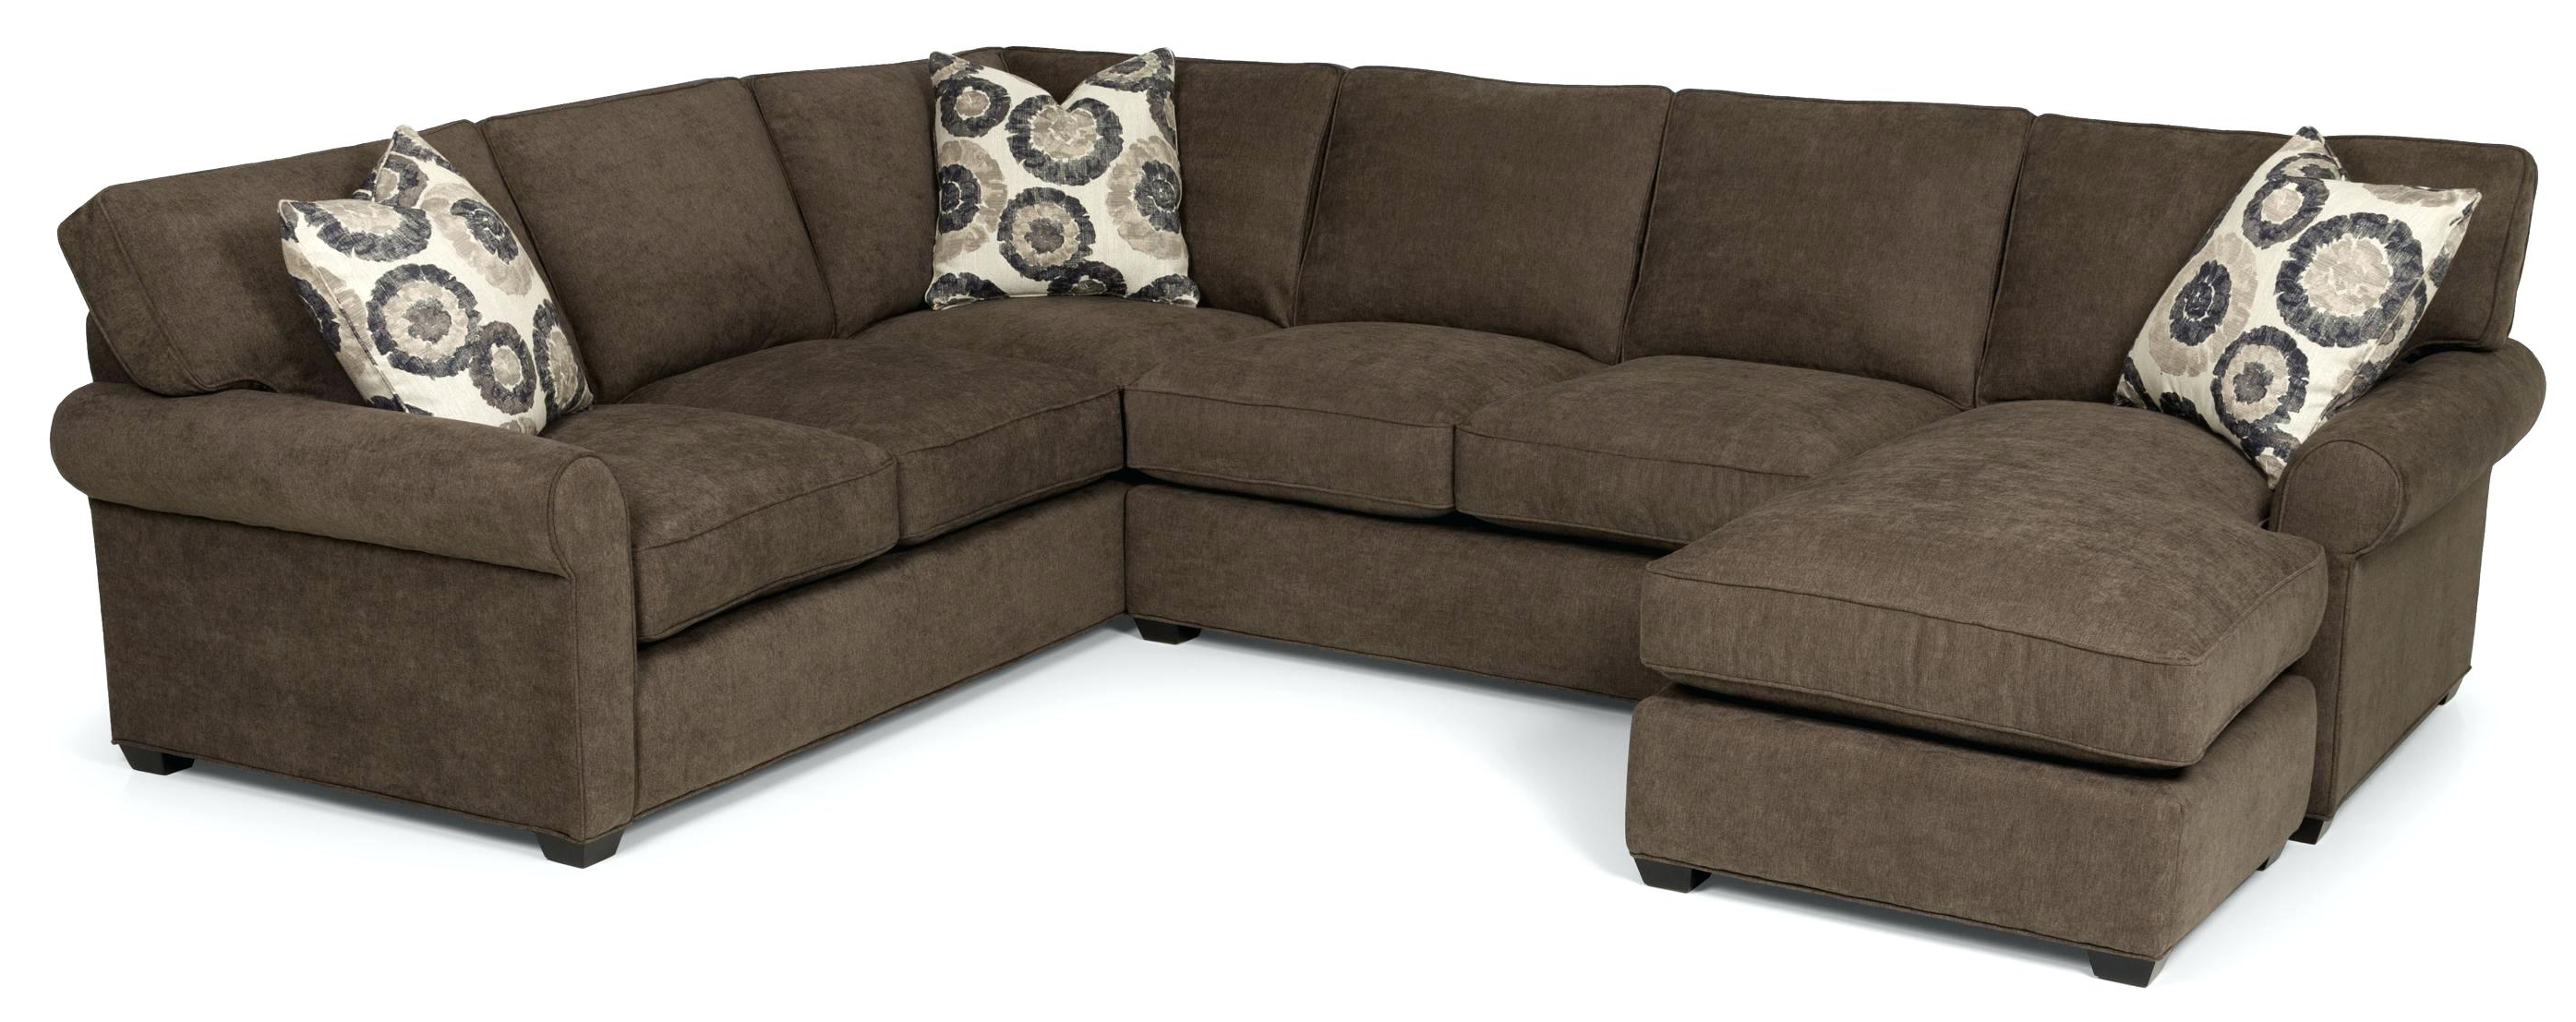 Most Recent 2 Piece Sectional Sofa With Chaise 2 Piece Sectional With Chaise Intended For Jobs Oat 2 Piece Sectionals With Left Facing Chaise (View 15 of 20)